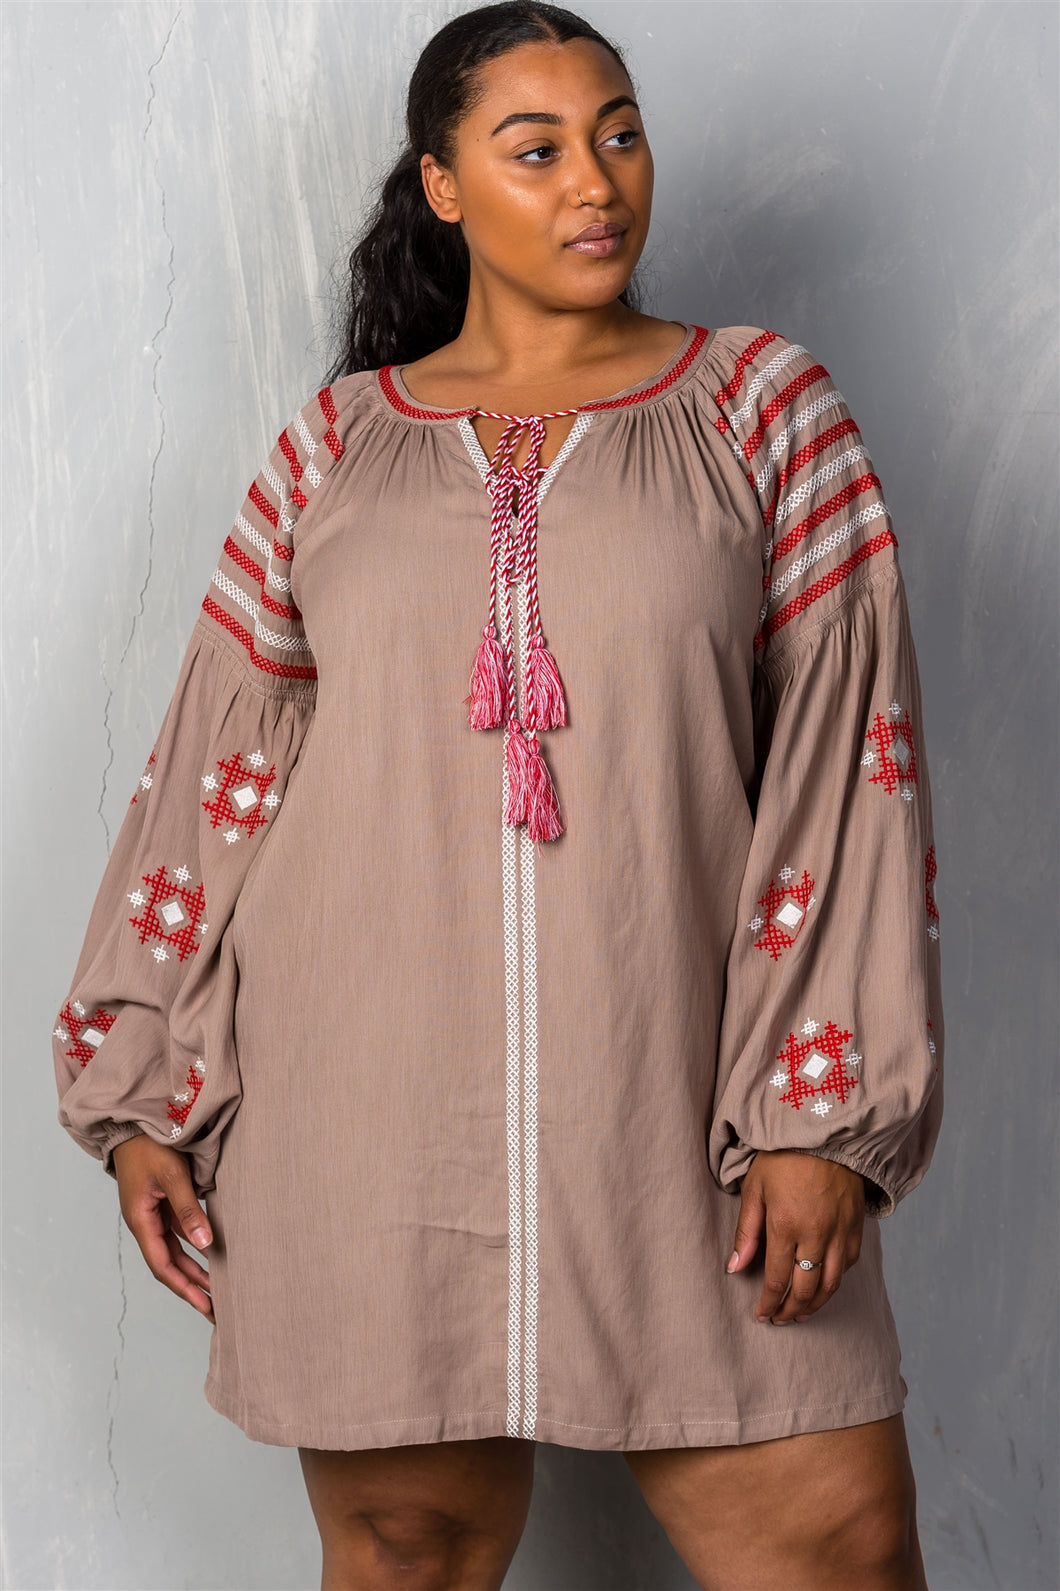 Ladies fashion plus size mocha tribal embroidered long sleeve blouse w/ tassel at collar